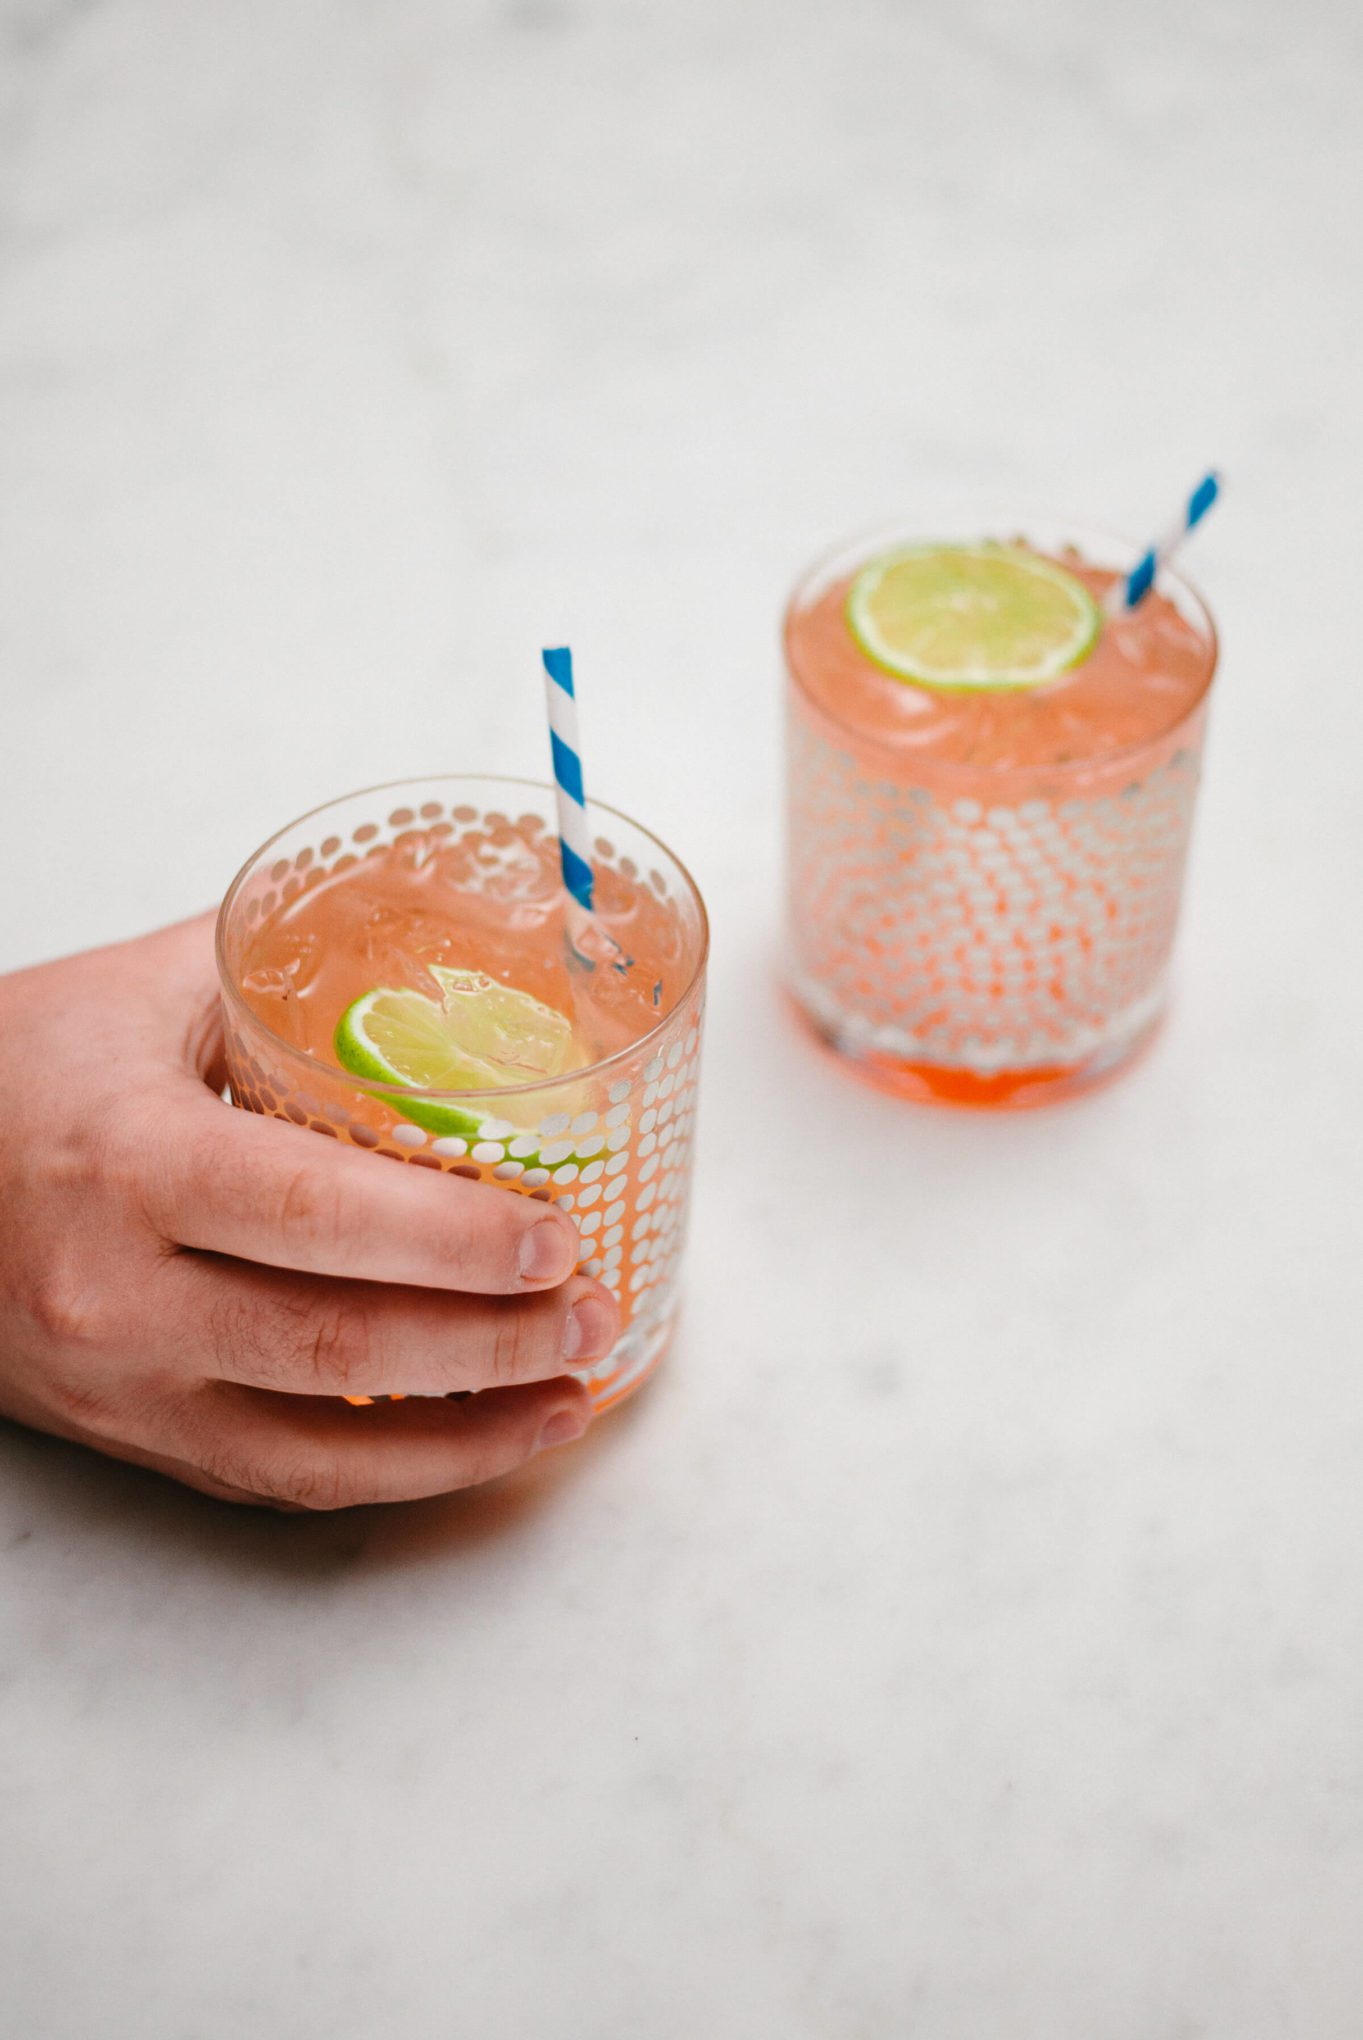 The Taste SF makes Paloma cocktails with these paper straws give them a pop of color